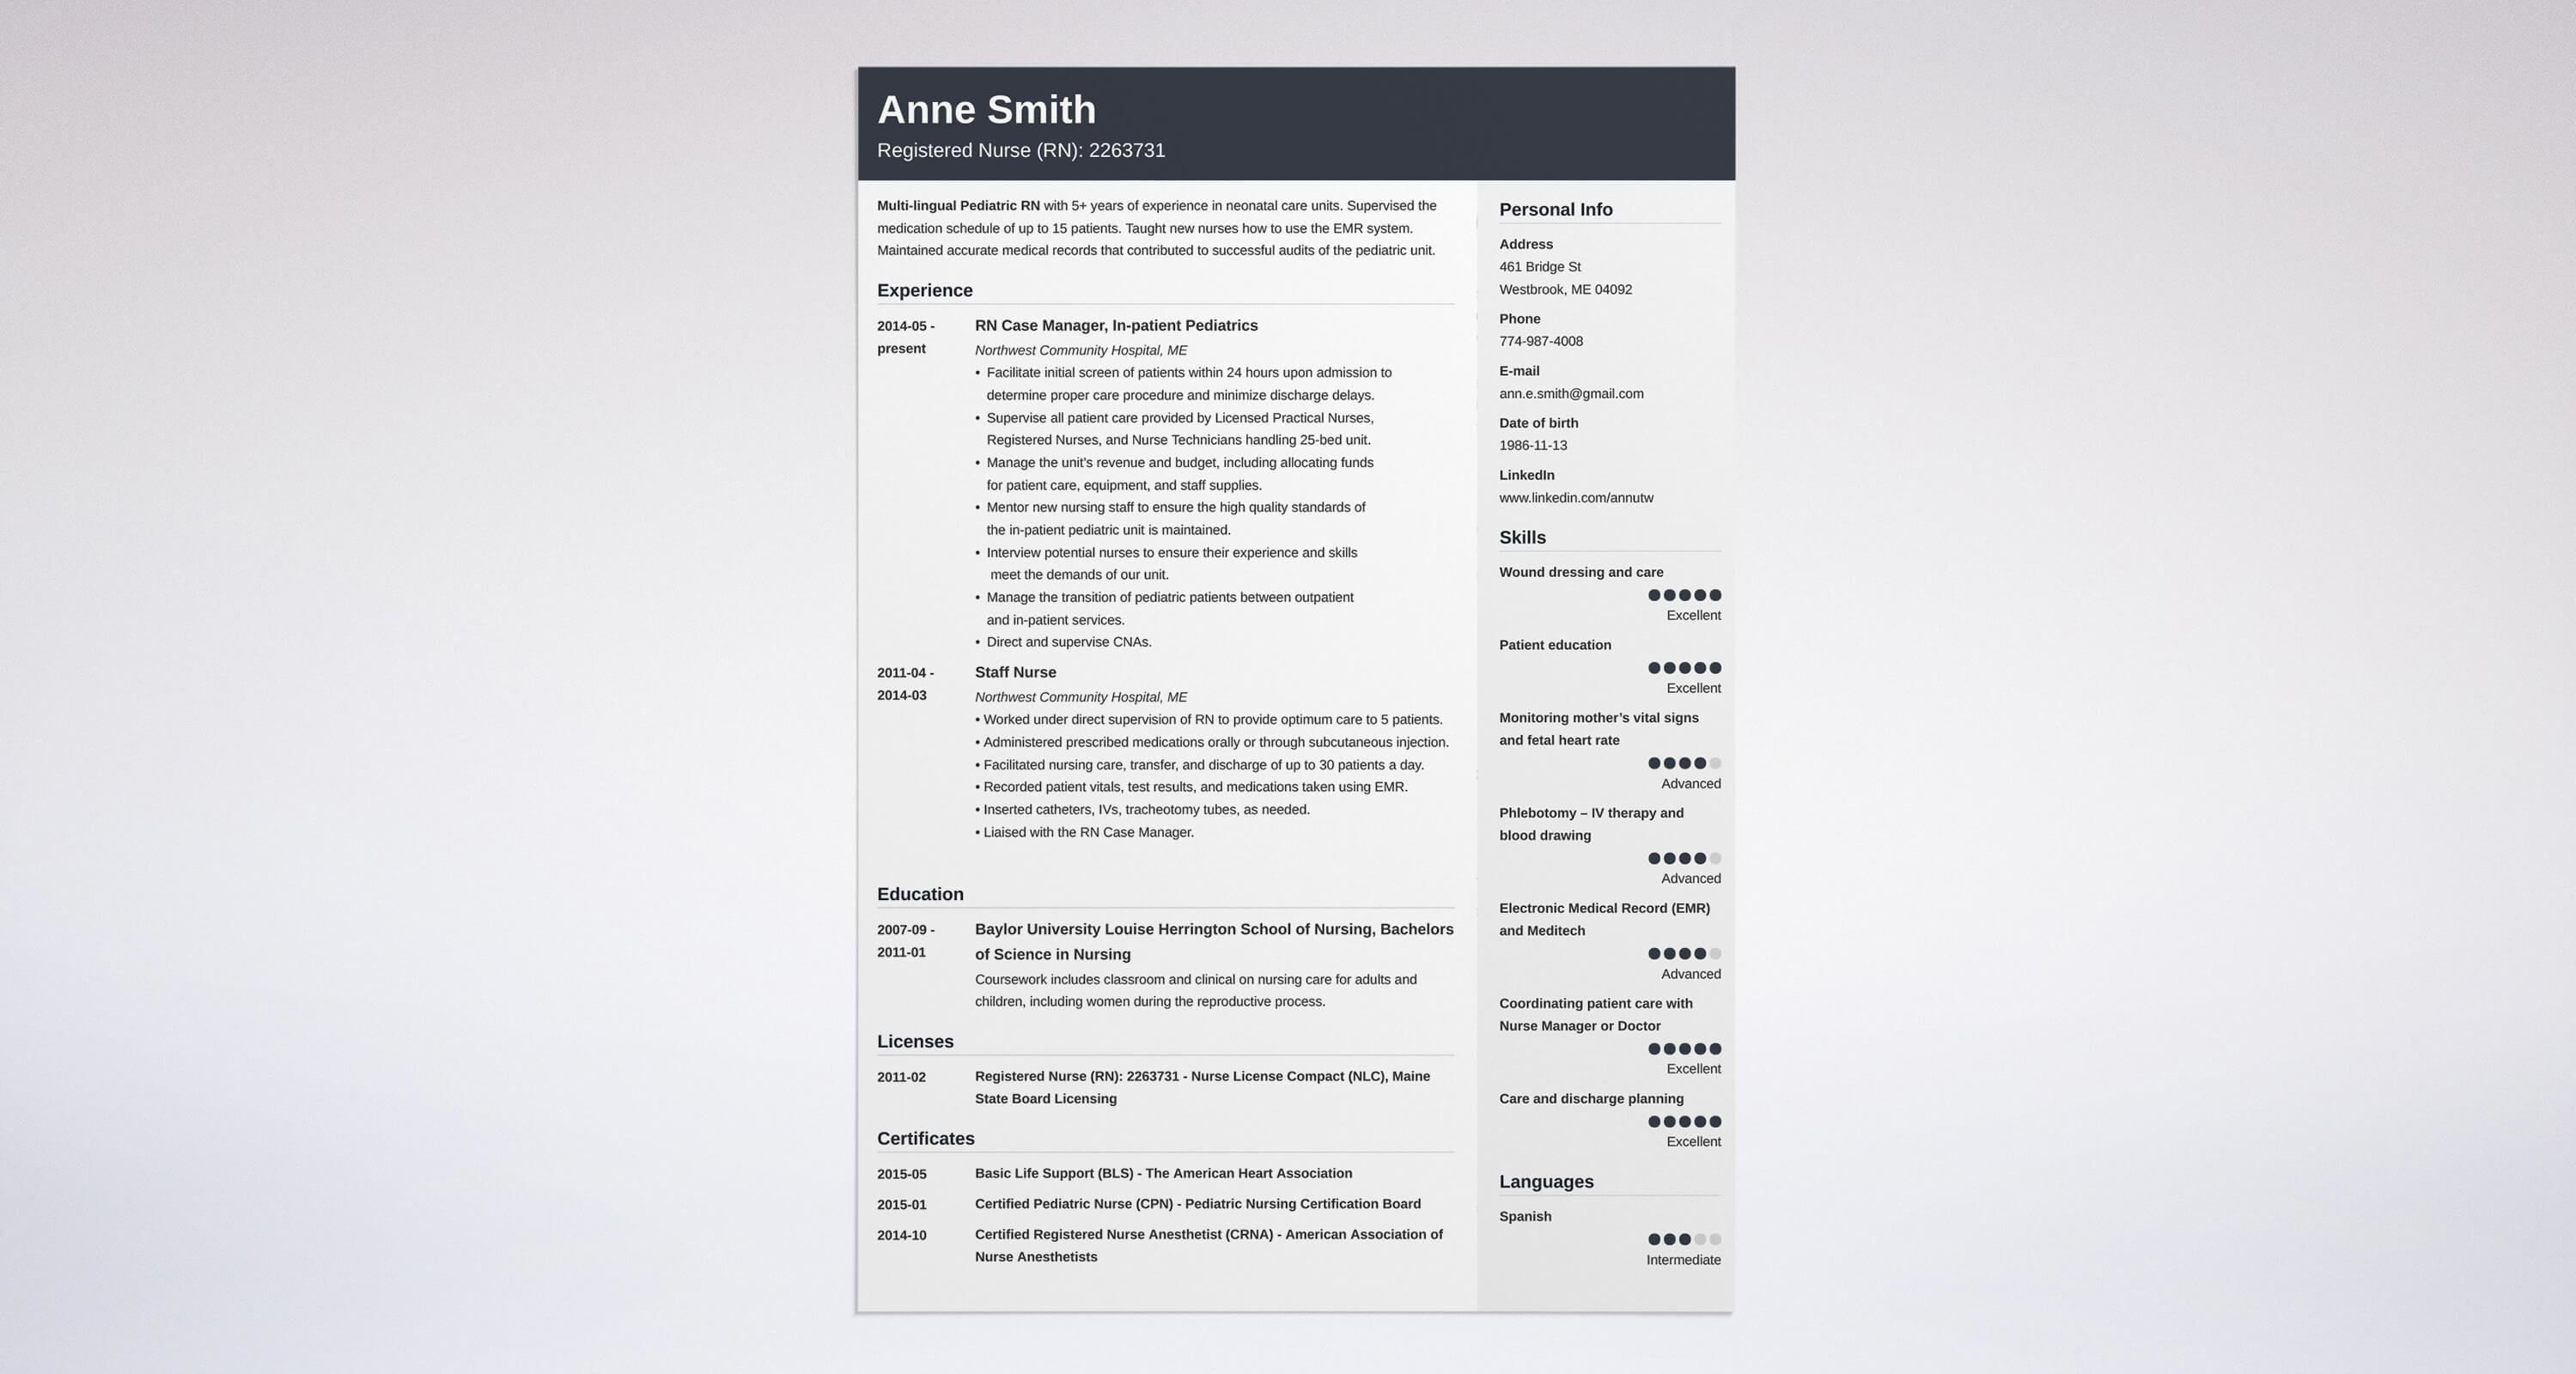 Nursing Resume Template & Guide [Examples of Experience ...